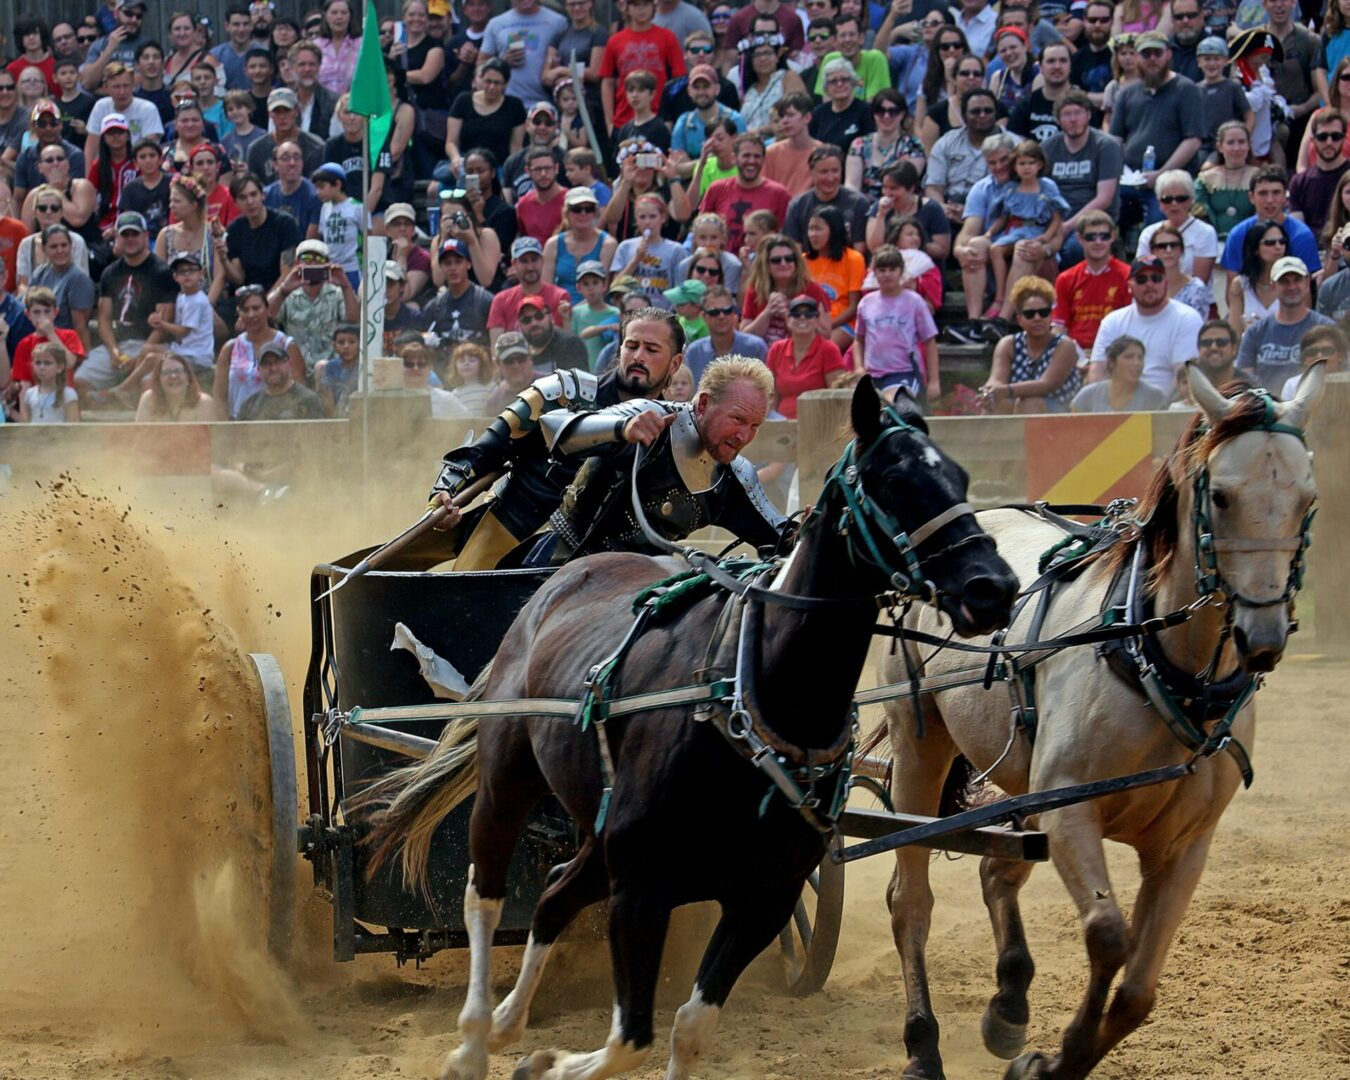 Frank Tirrell - Honorable Mention - Best Photograph - Chariot on Fire